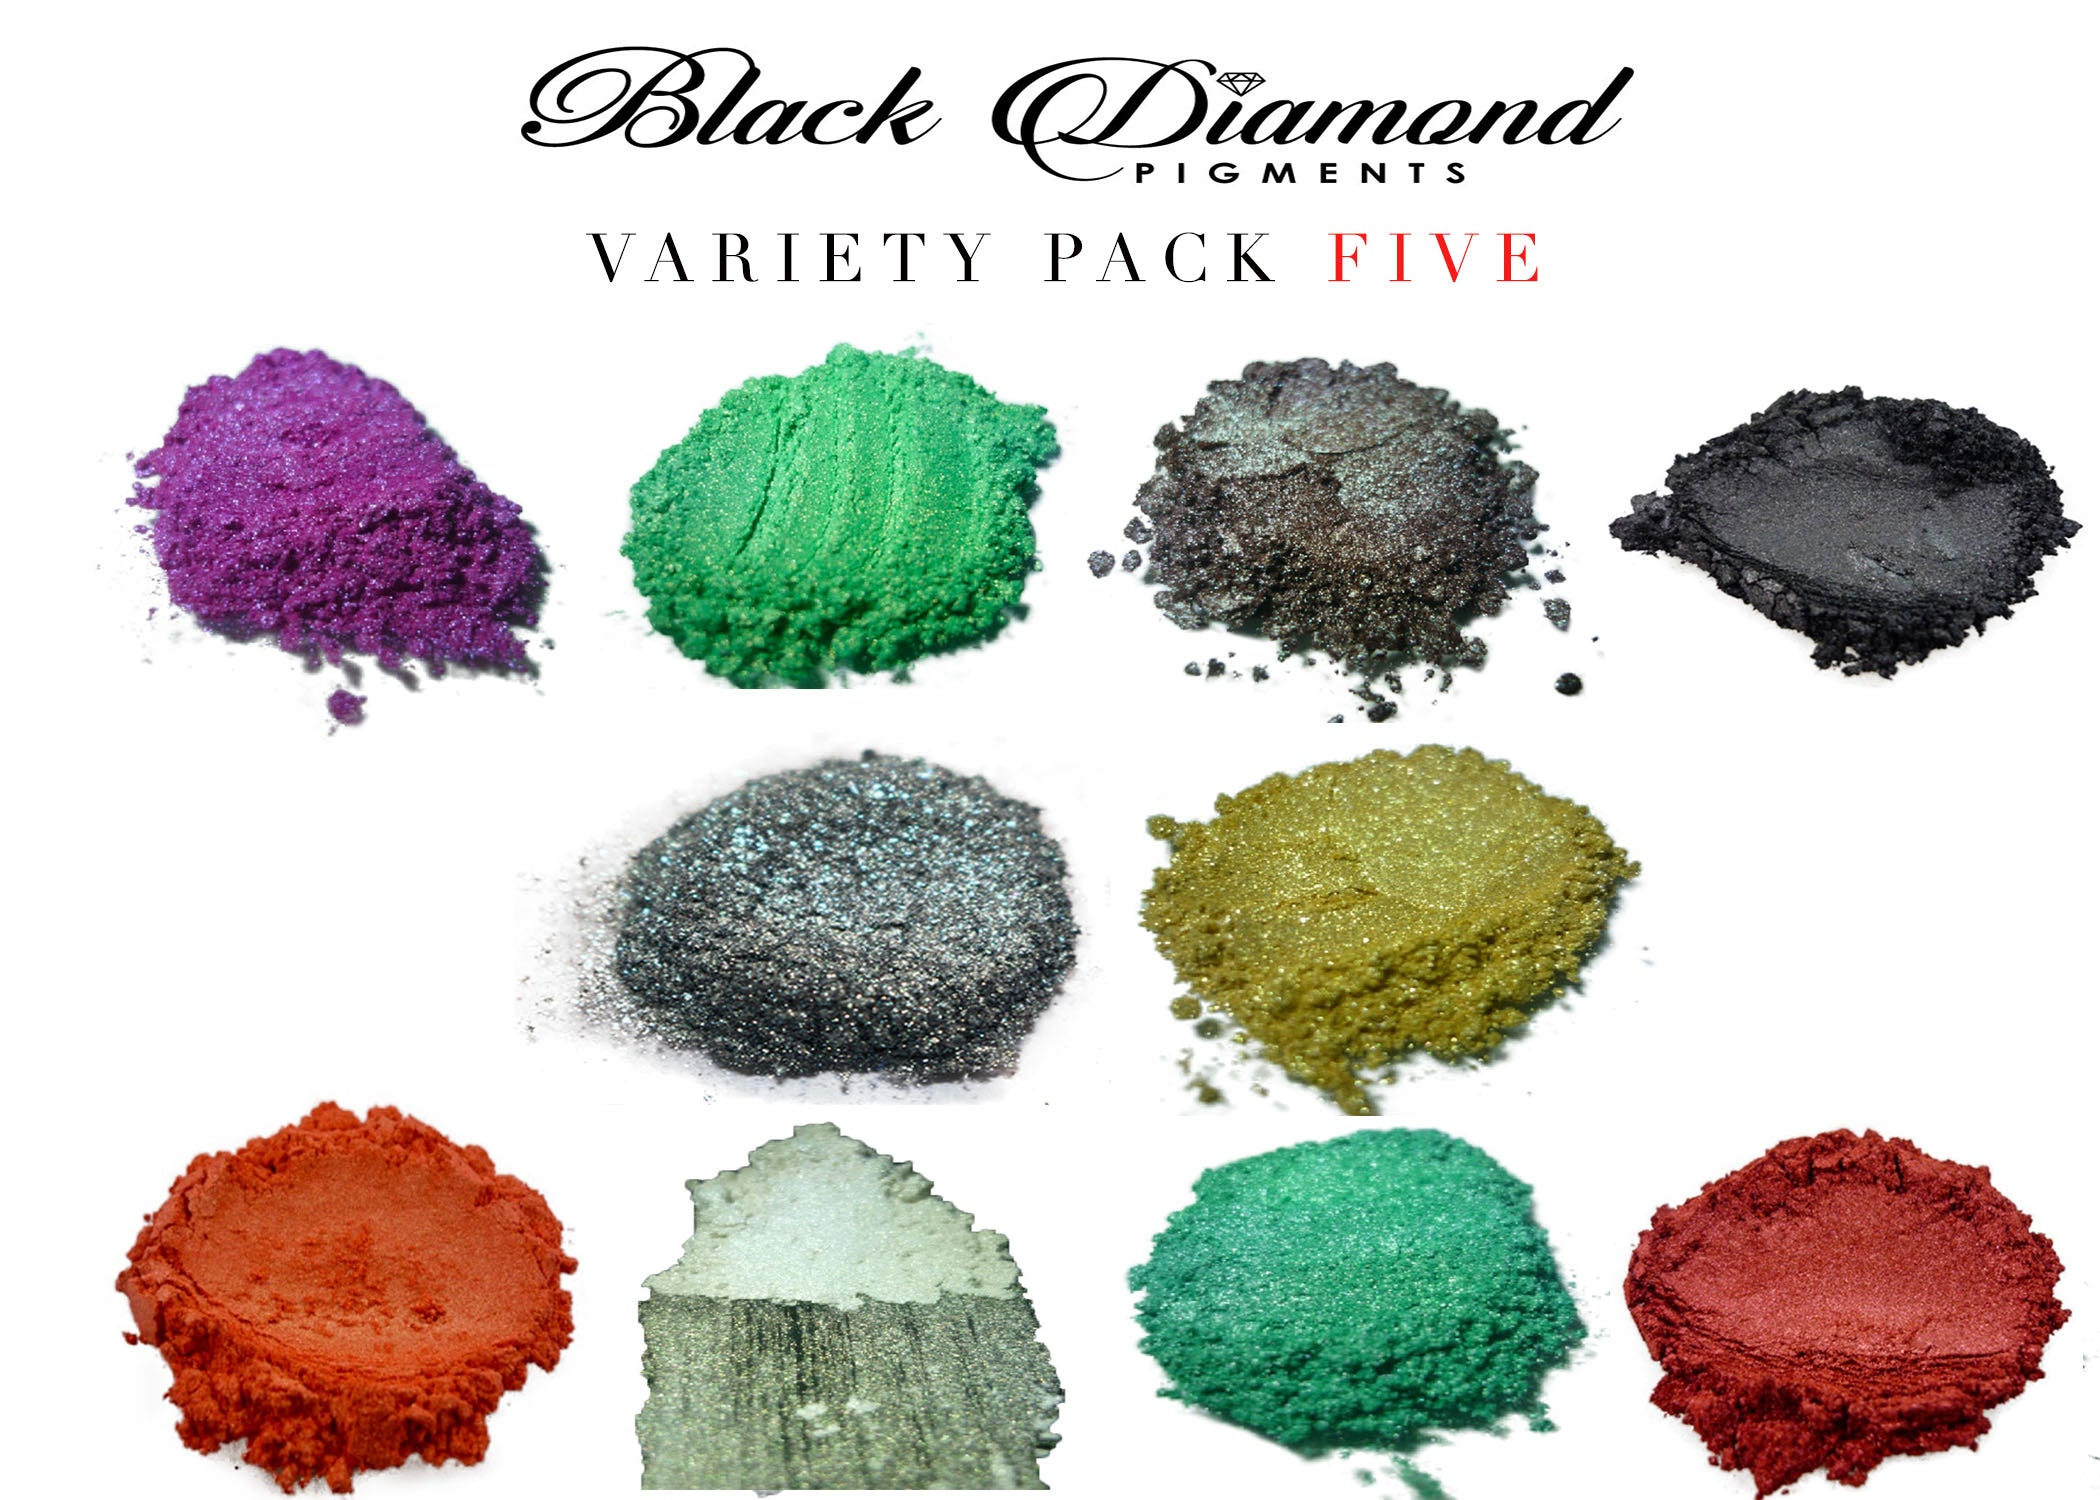 VARIETY PACK 5 (10 COLORS) Mica Powder pigment variety pack Black Diamond Pigments® - Black Diamond Pigments